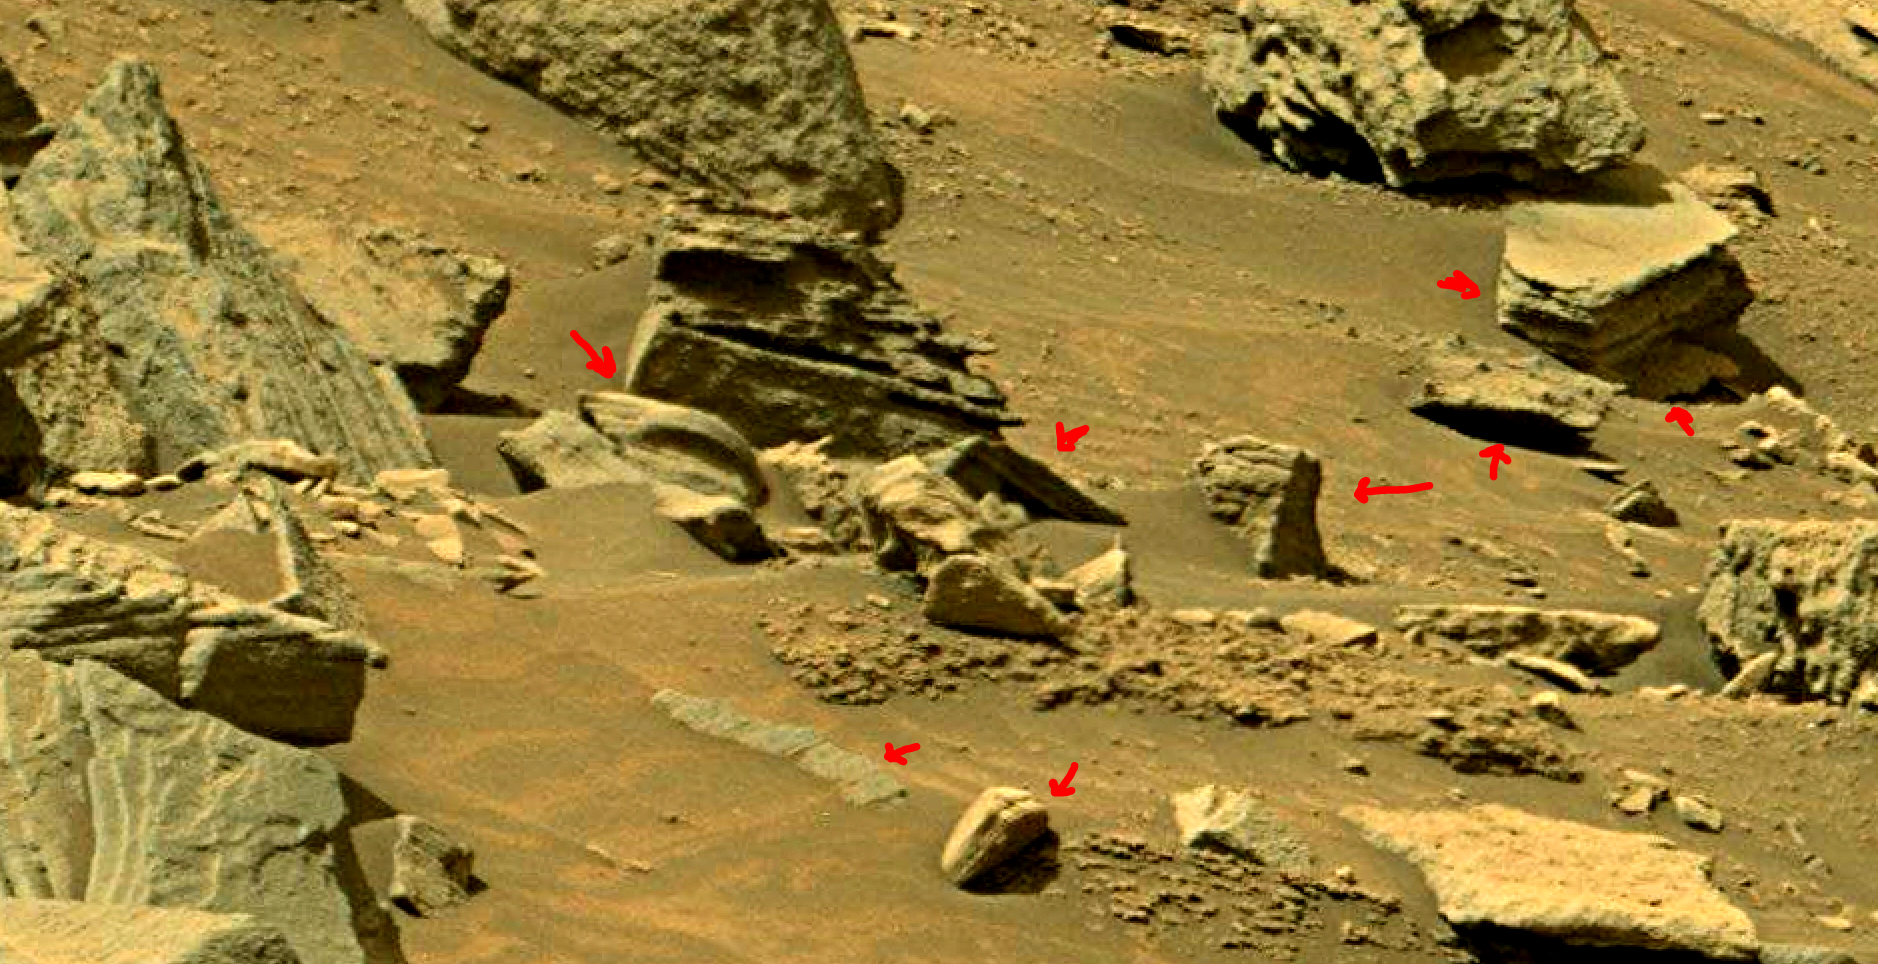 mars-sol-1467-anomaly-artifacts-7-was-life-on-mars